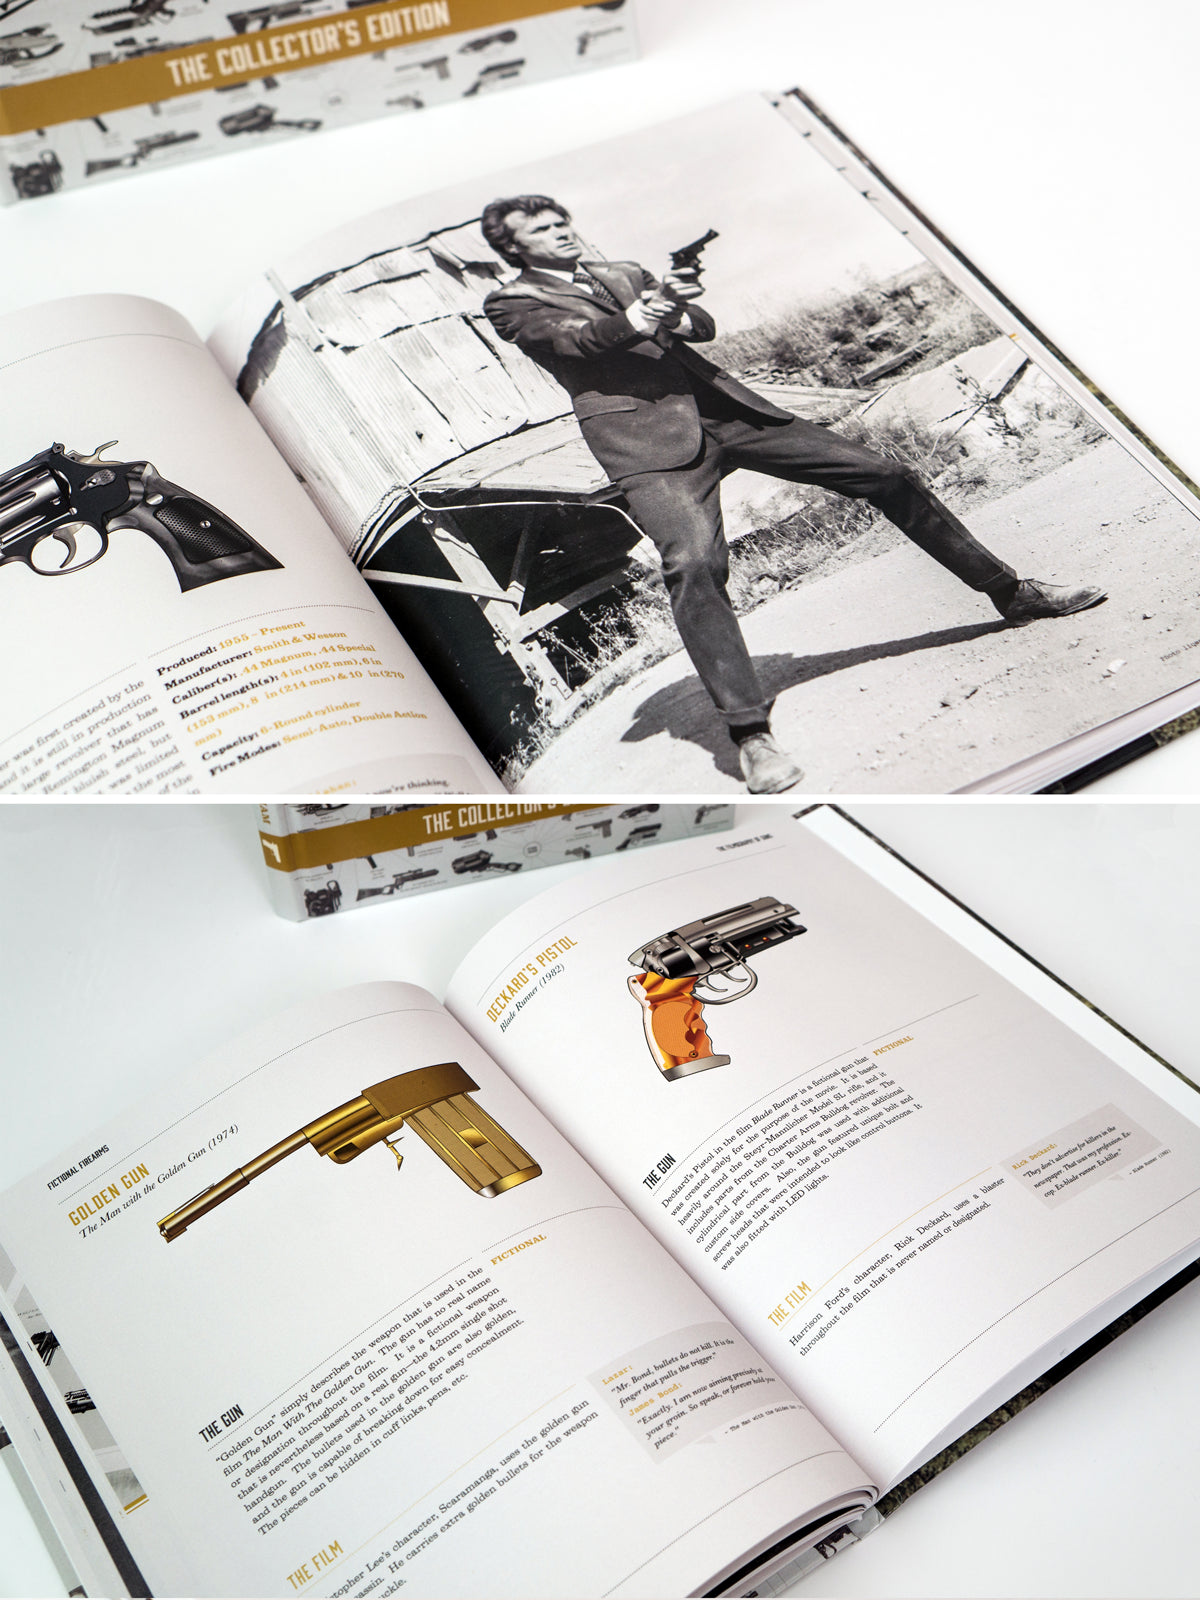 The Filmography of Guns - Collector's Book